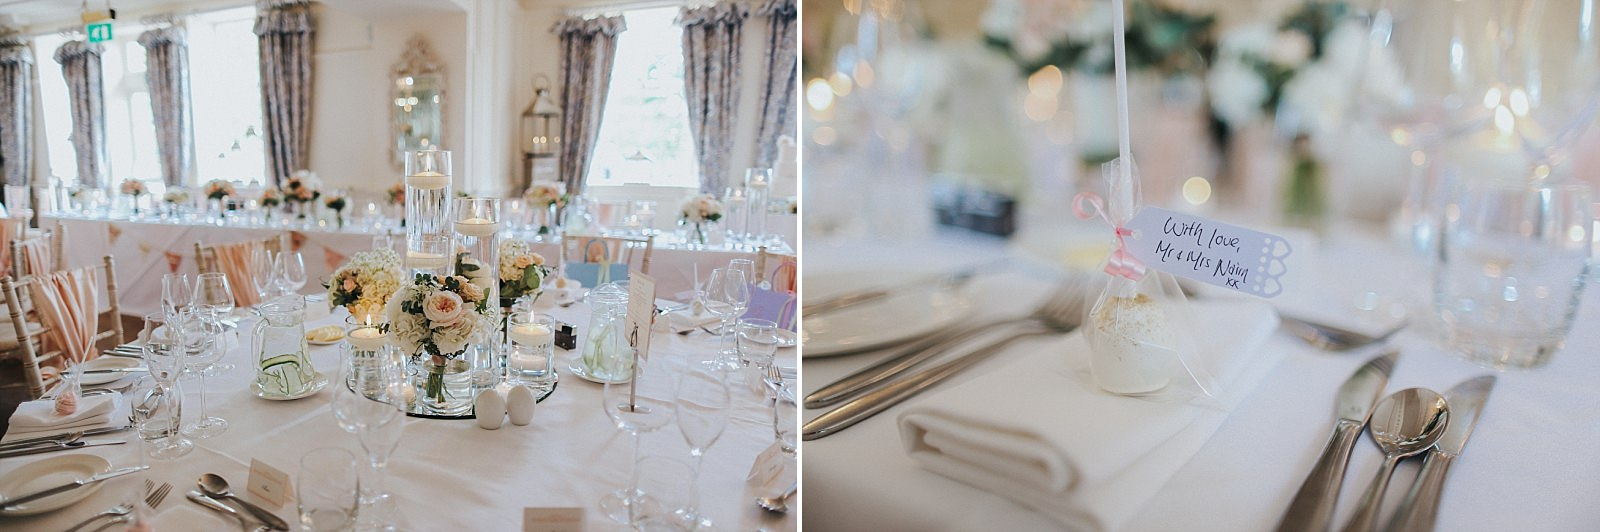 table centrepieces at eaves hall clitheroe